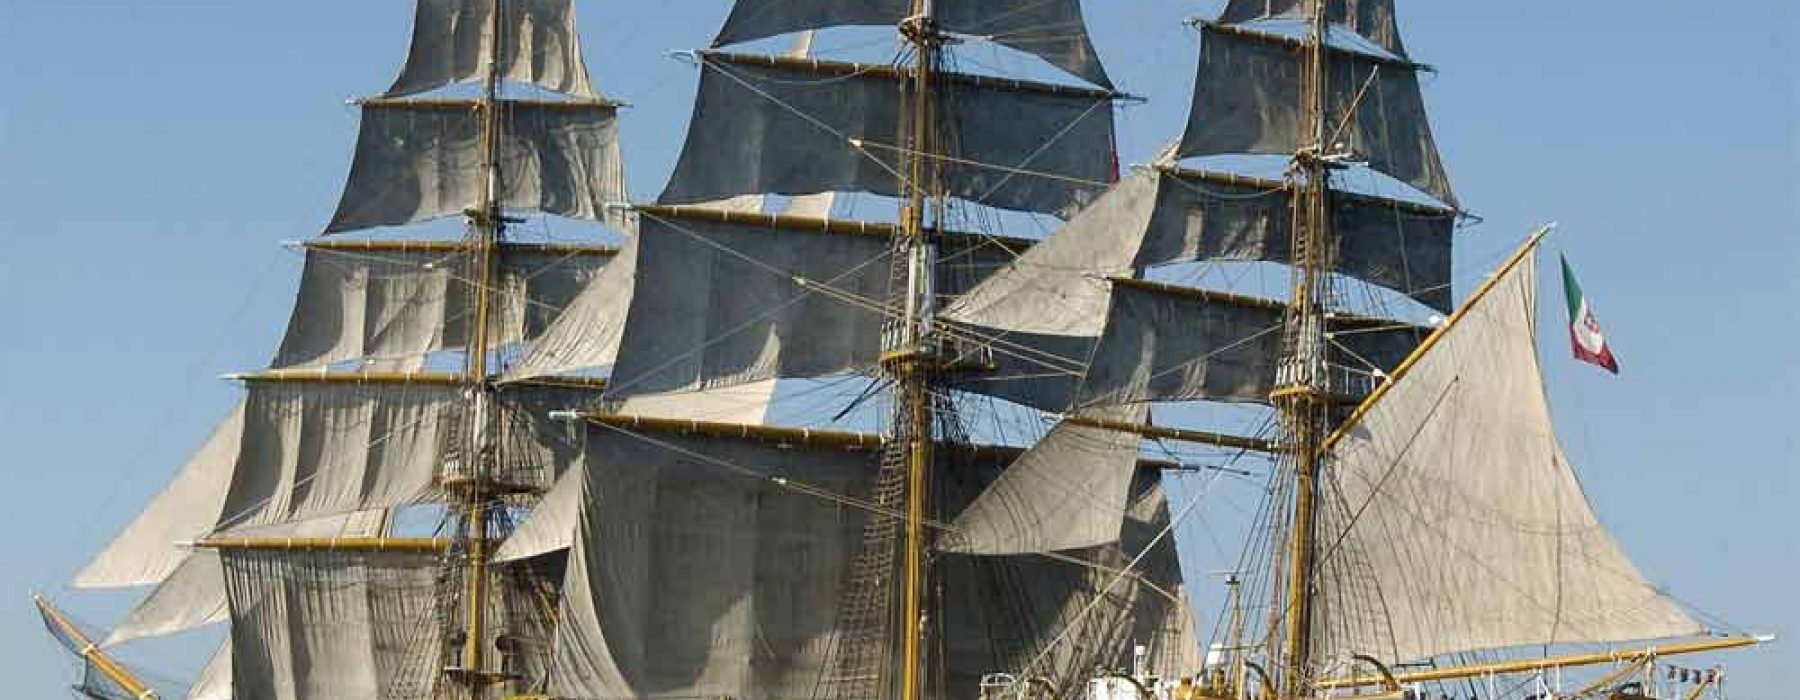 Amerigo Vespucci, the most beautiful Italian ship in the world